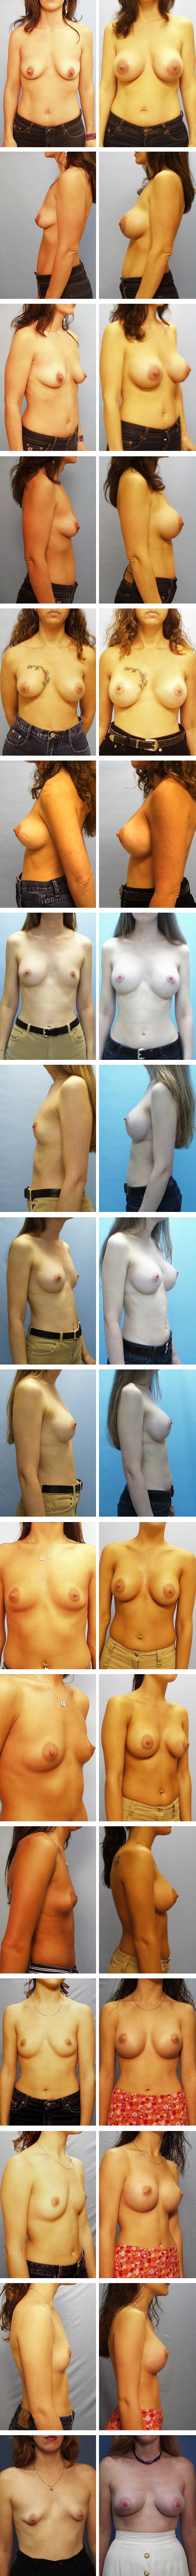 Breast Augmentation Periareolar Incision Before and After Sets